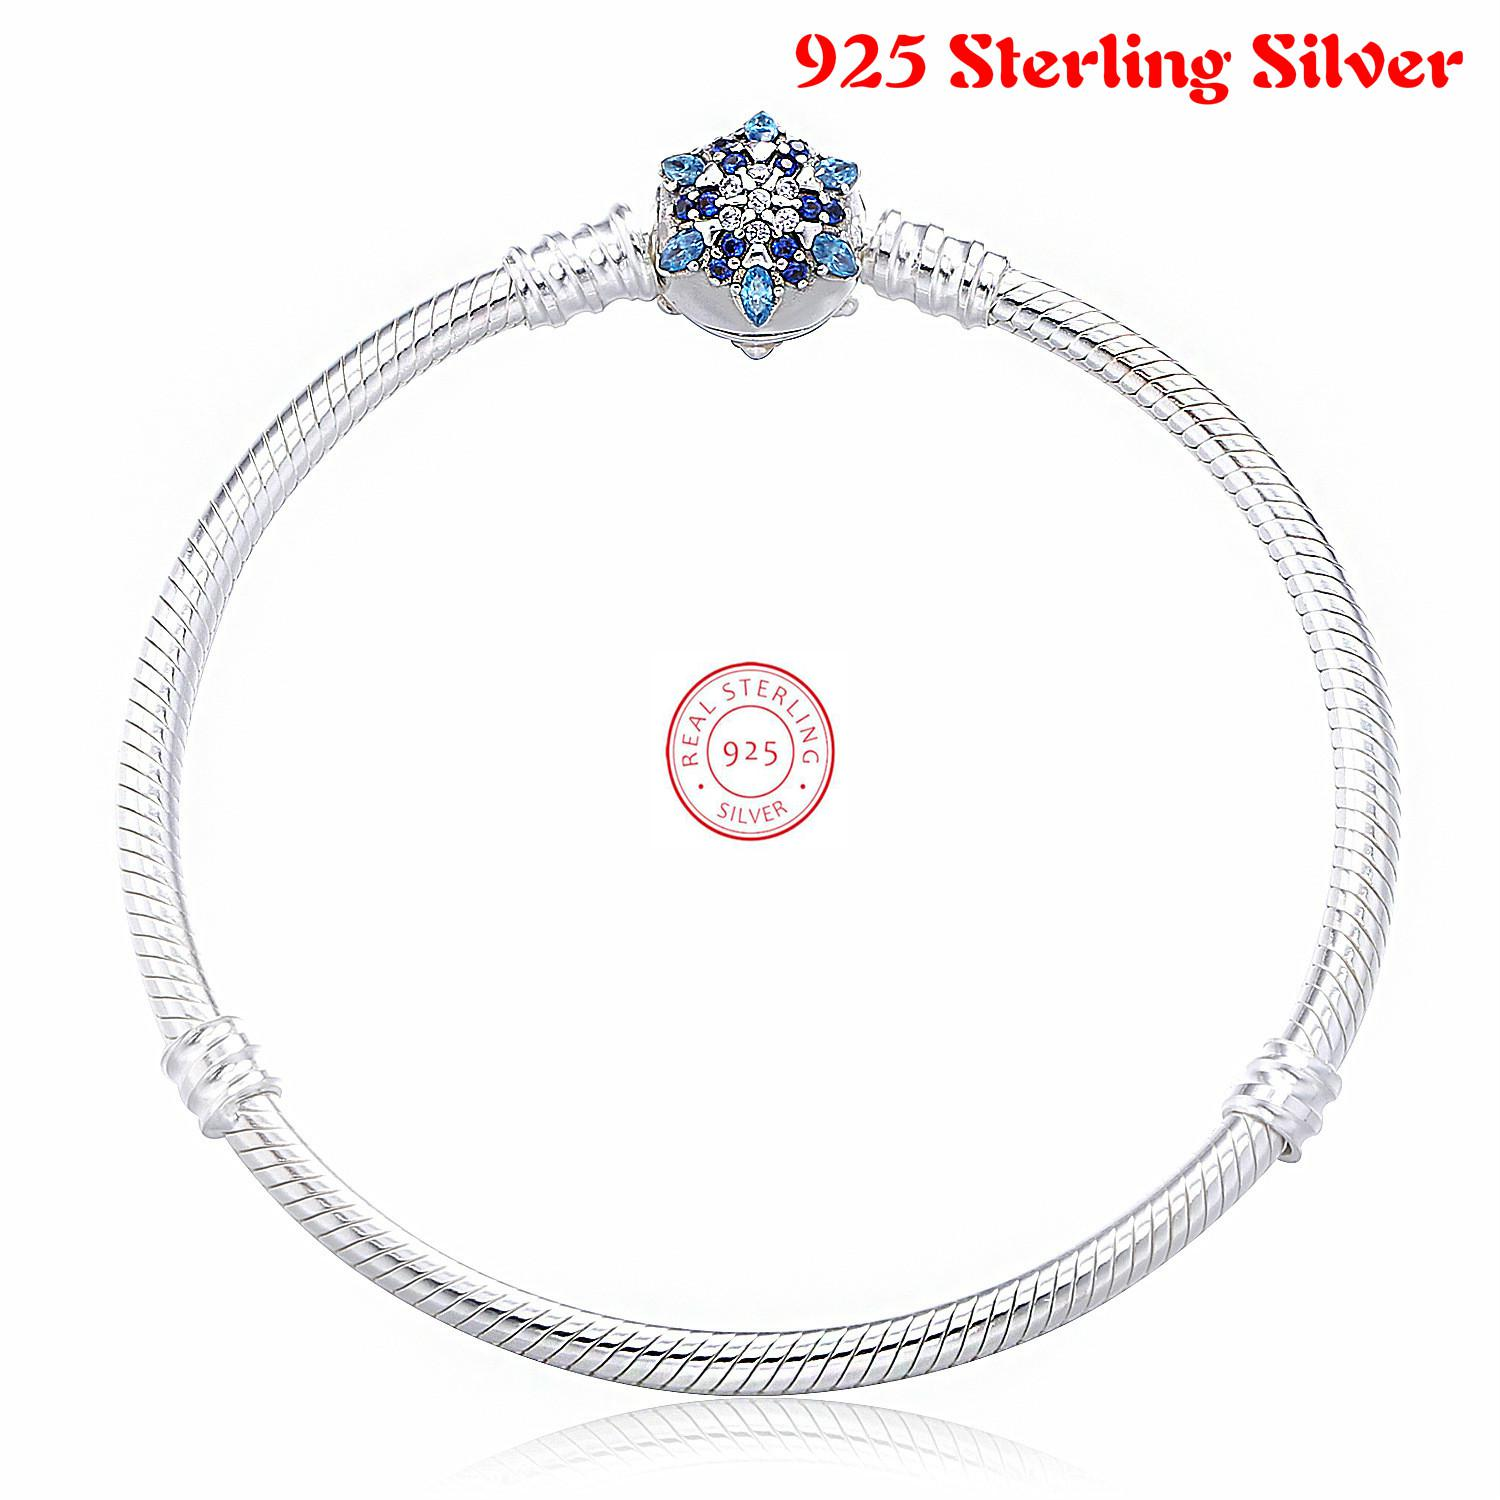 925 Sterling Silver Crystalized Snowflake Clasp Snake Chain Basic Pandora Bracelets & Bangle Fit Women Charm Jewelry ztung hb20 charm bracelets classic 925 sterling silver have many color for women s girls wonderful gift jewelry bangle